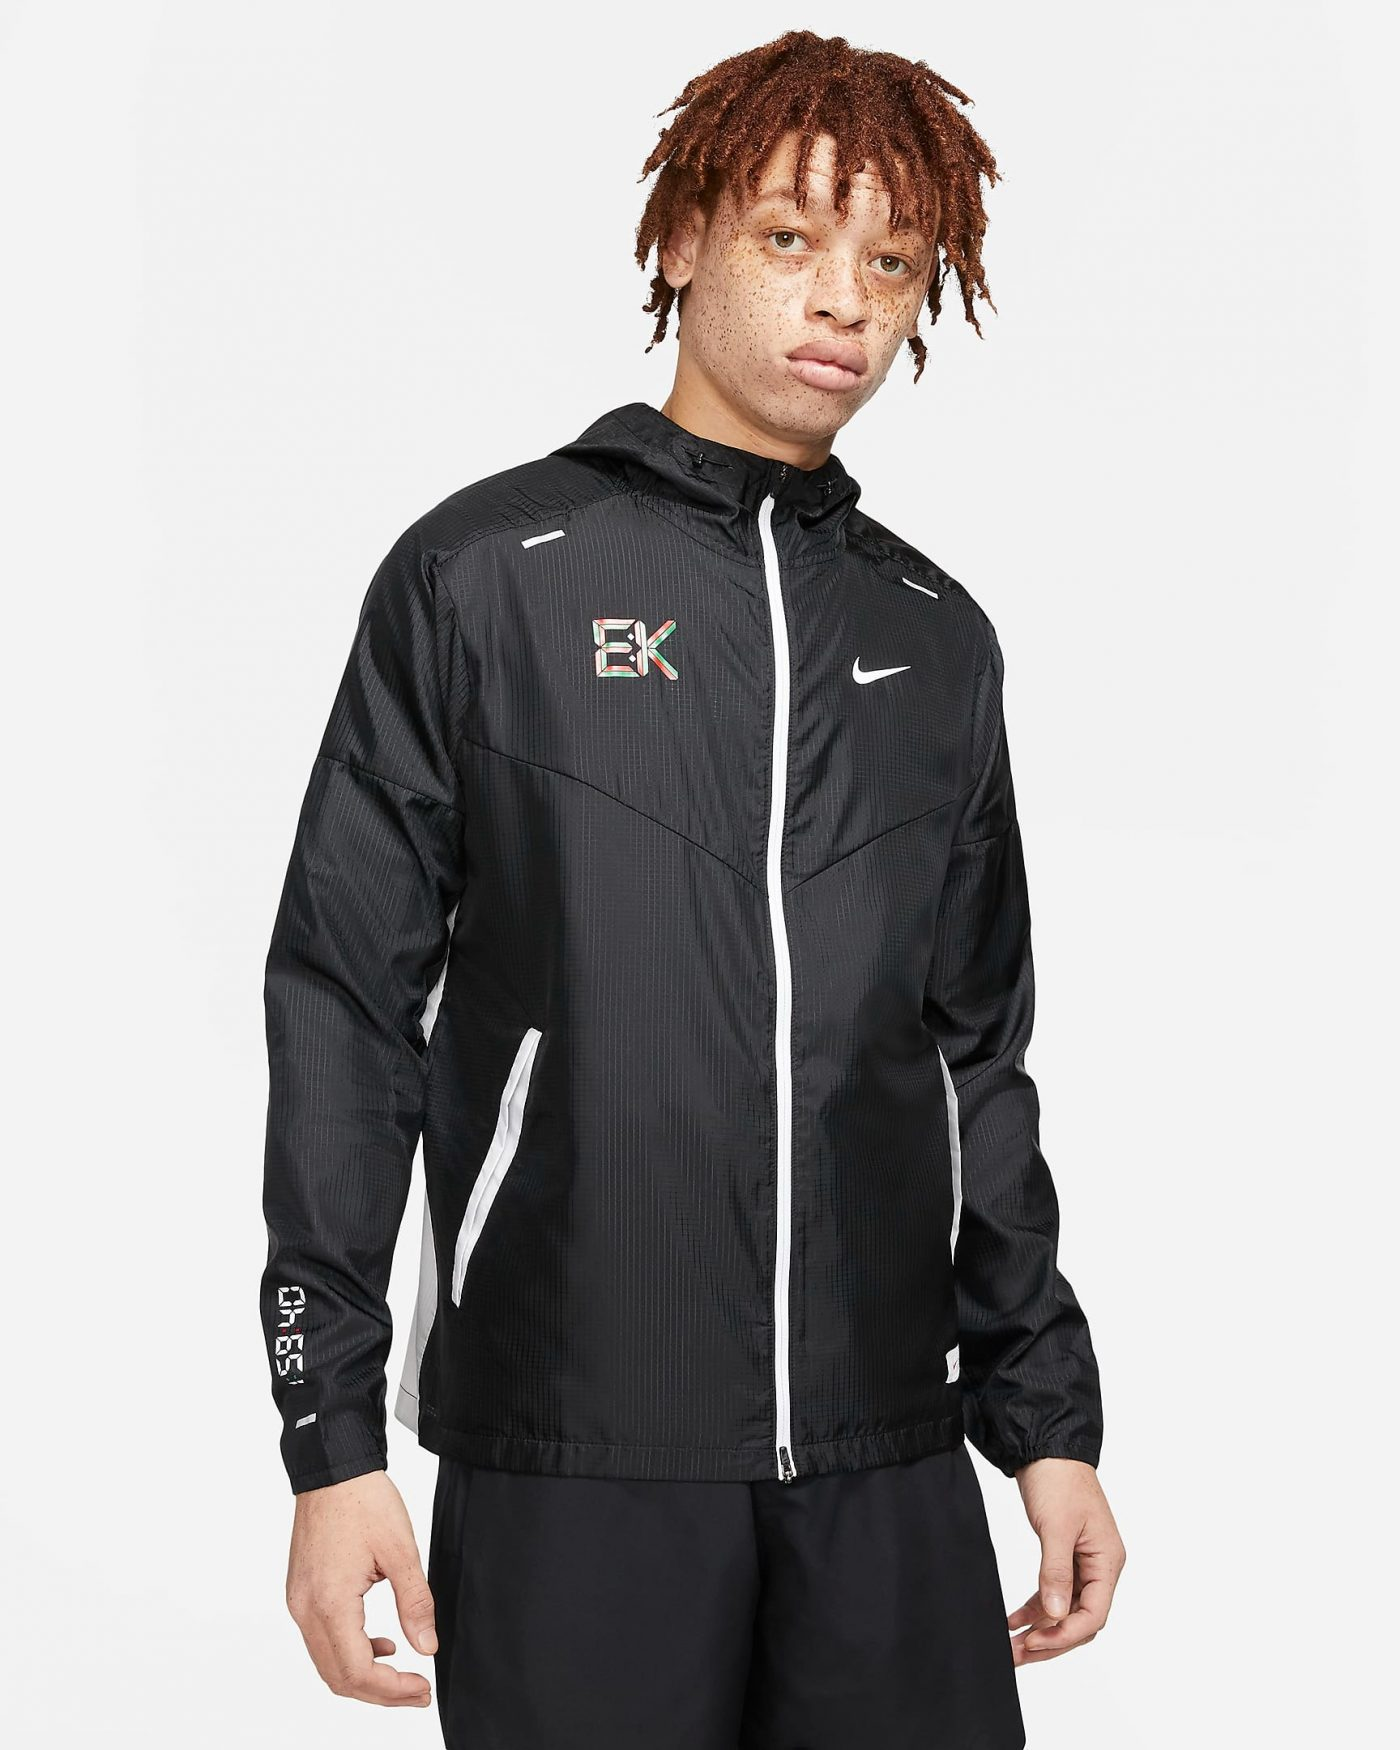 veste_collection_capsule_nike_kipchoge_homme